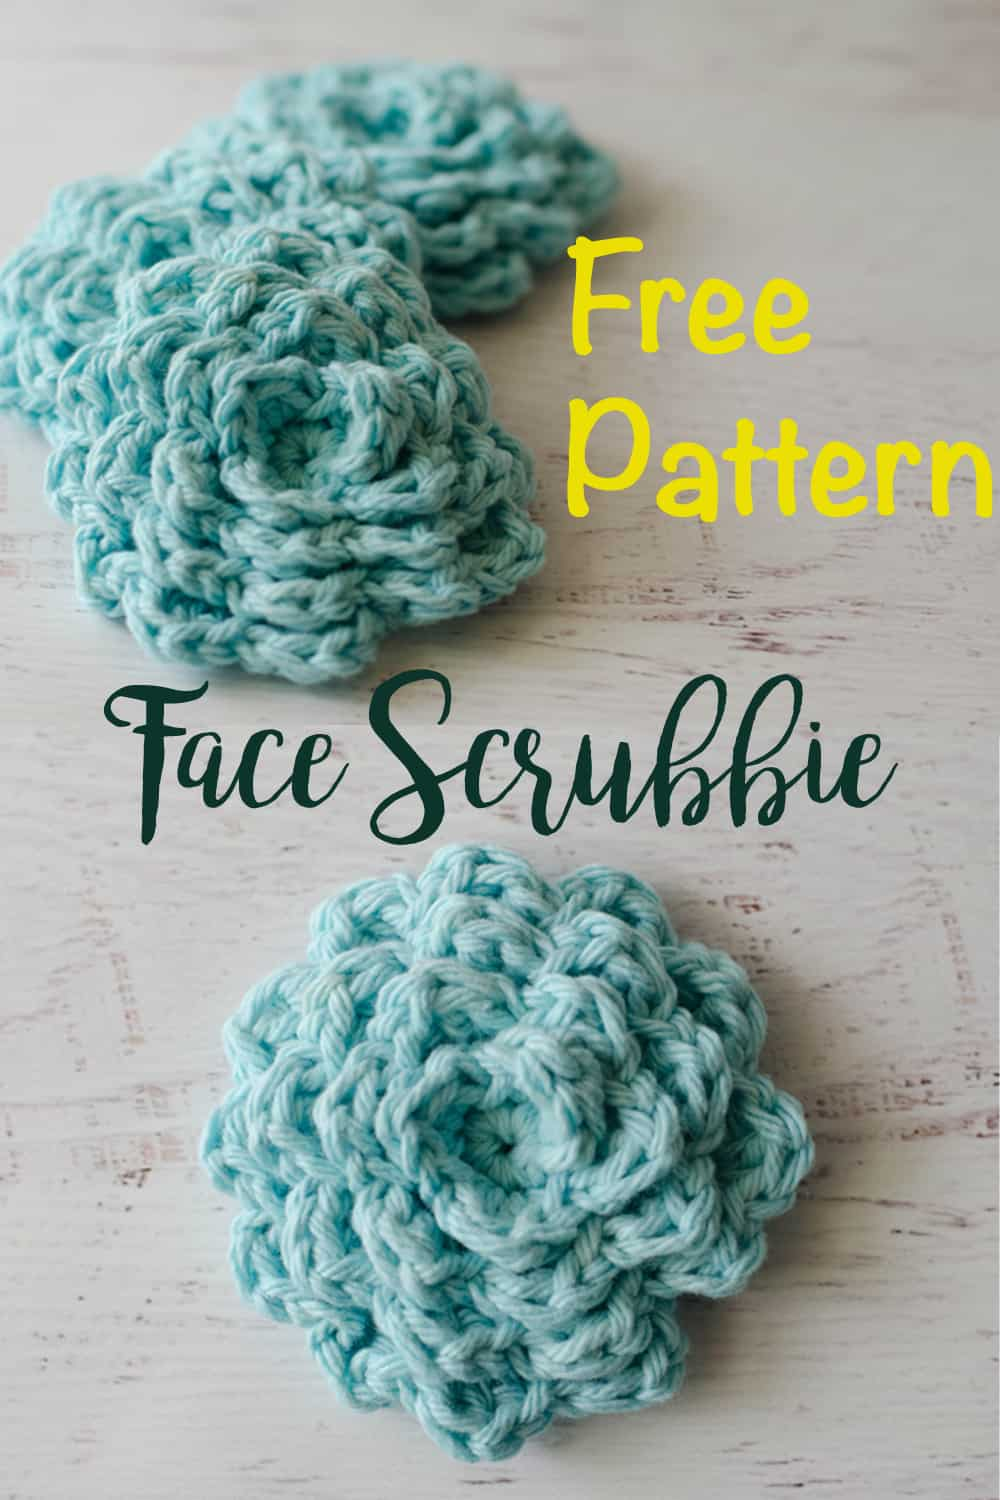 Free pattern for crochet face scrubbies